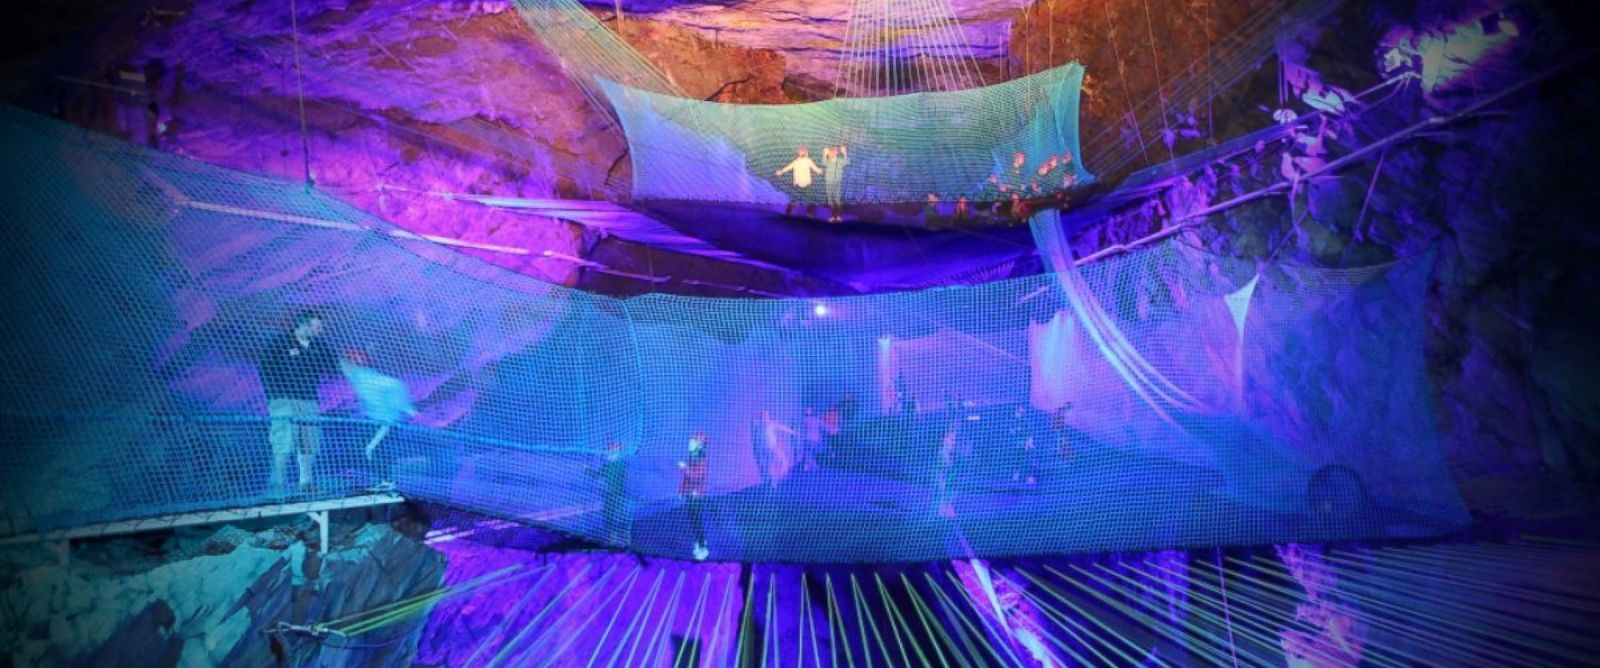 PHOTO: The worlds largest underground trampoline opened July 4, 2014, in Northern Wales.